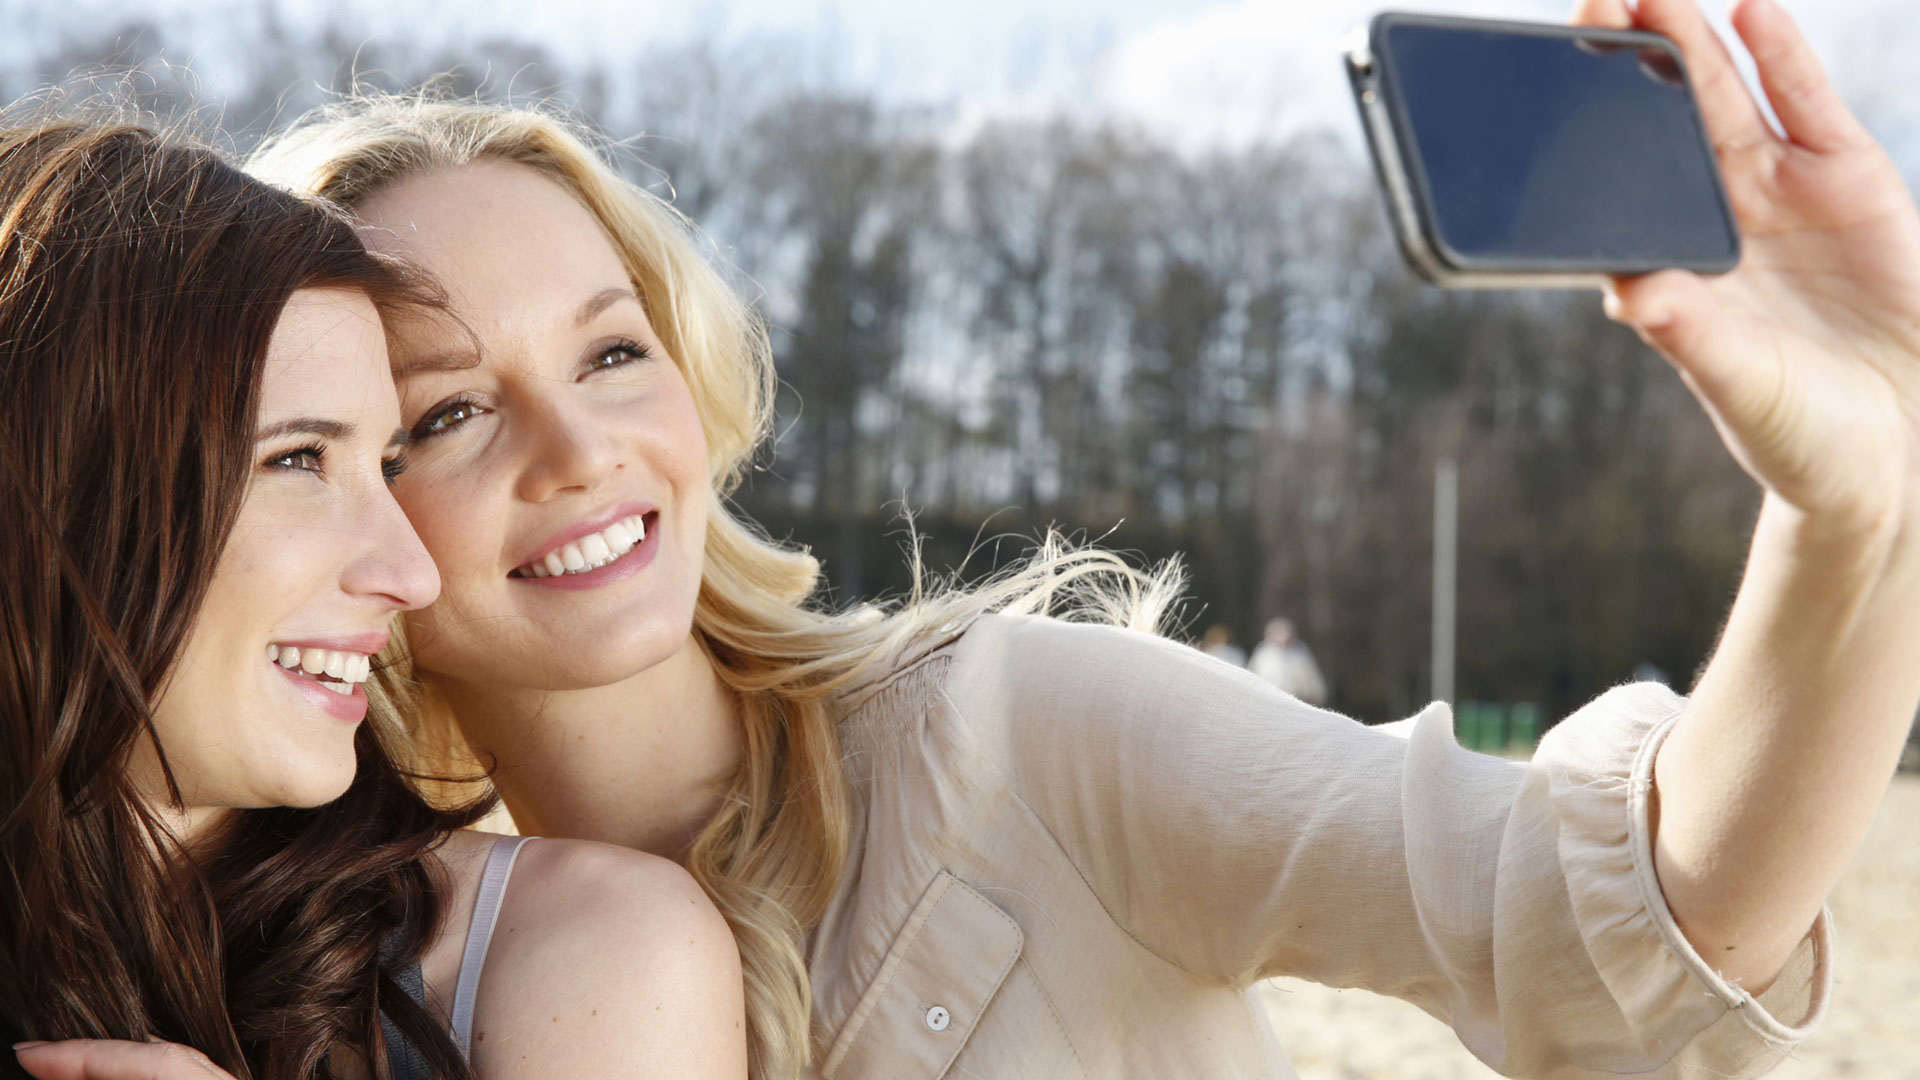 images-of-selfies-young